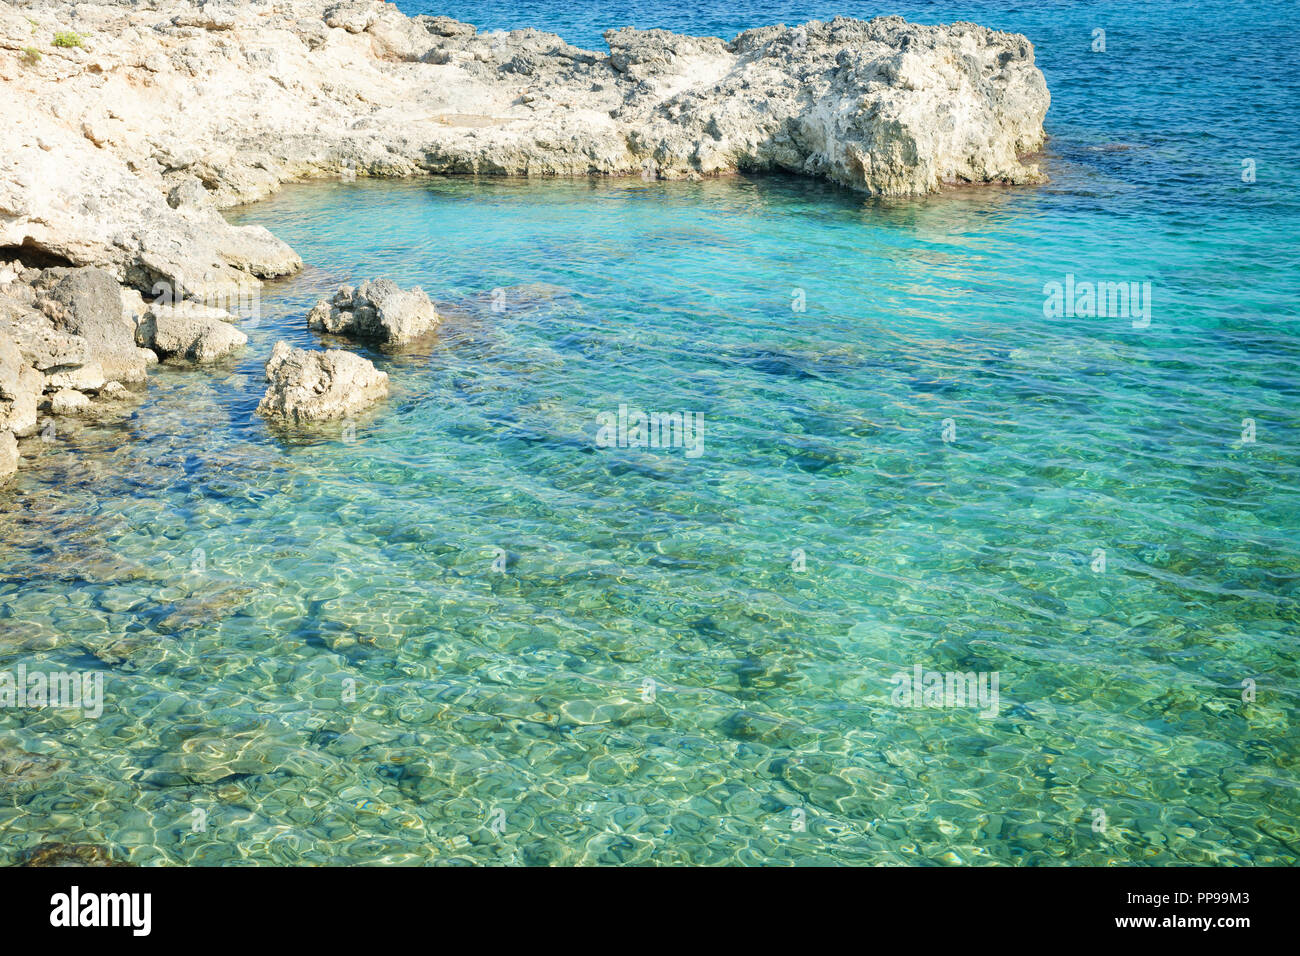 Blue water in a rocky cove near Ognina, Siracusa, Sicily, Italy Stock Photo